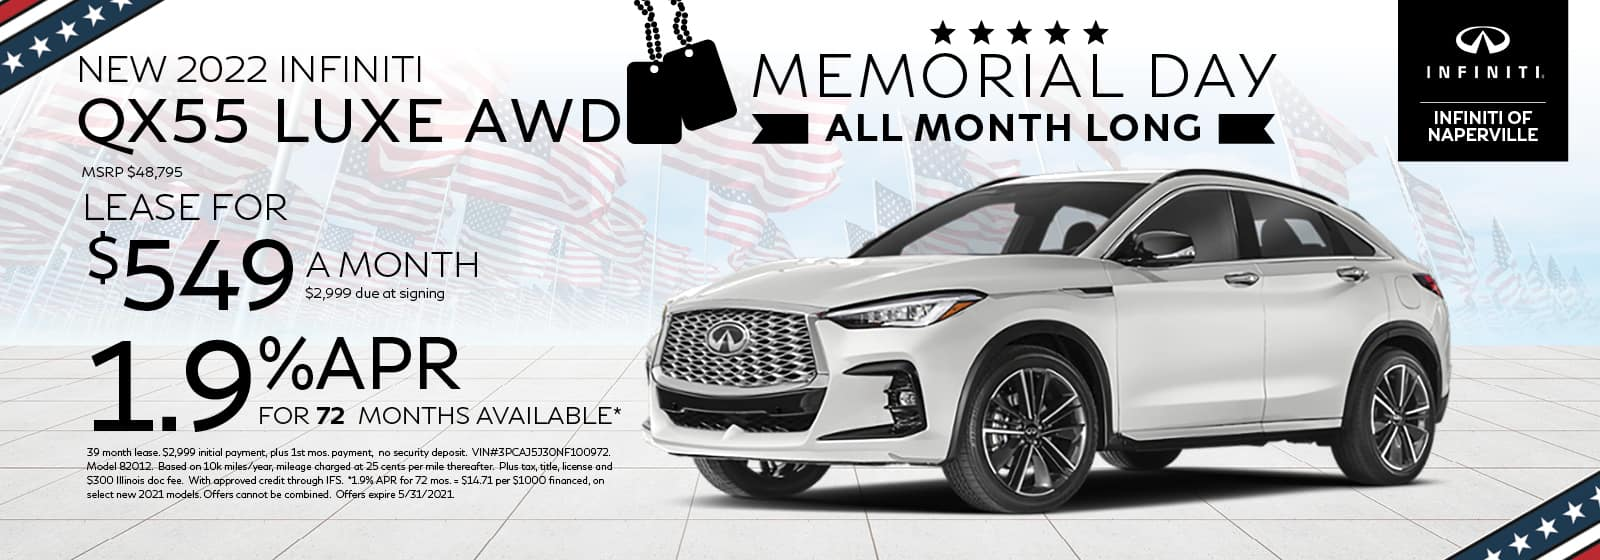 2022 INFINITI QX55 Lease or Finance Offer   INFINITI of Naperville